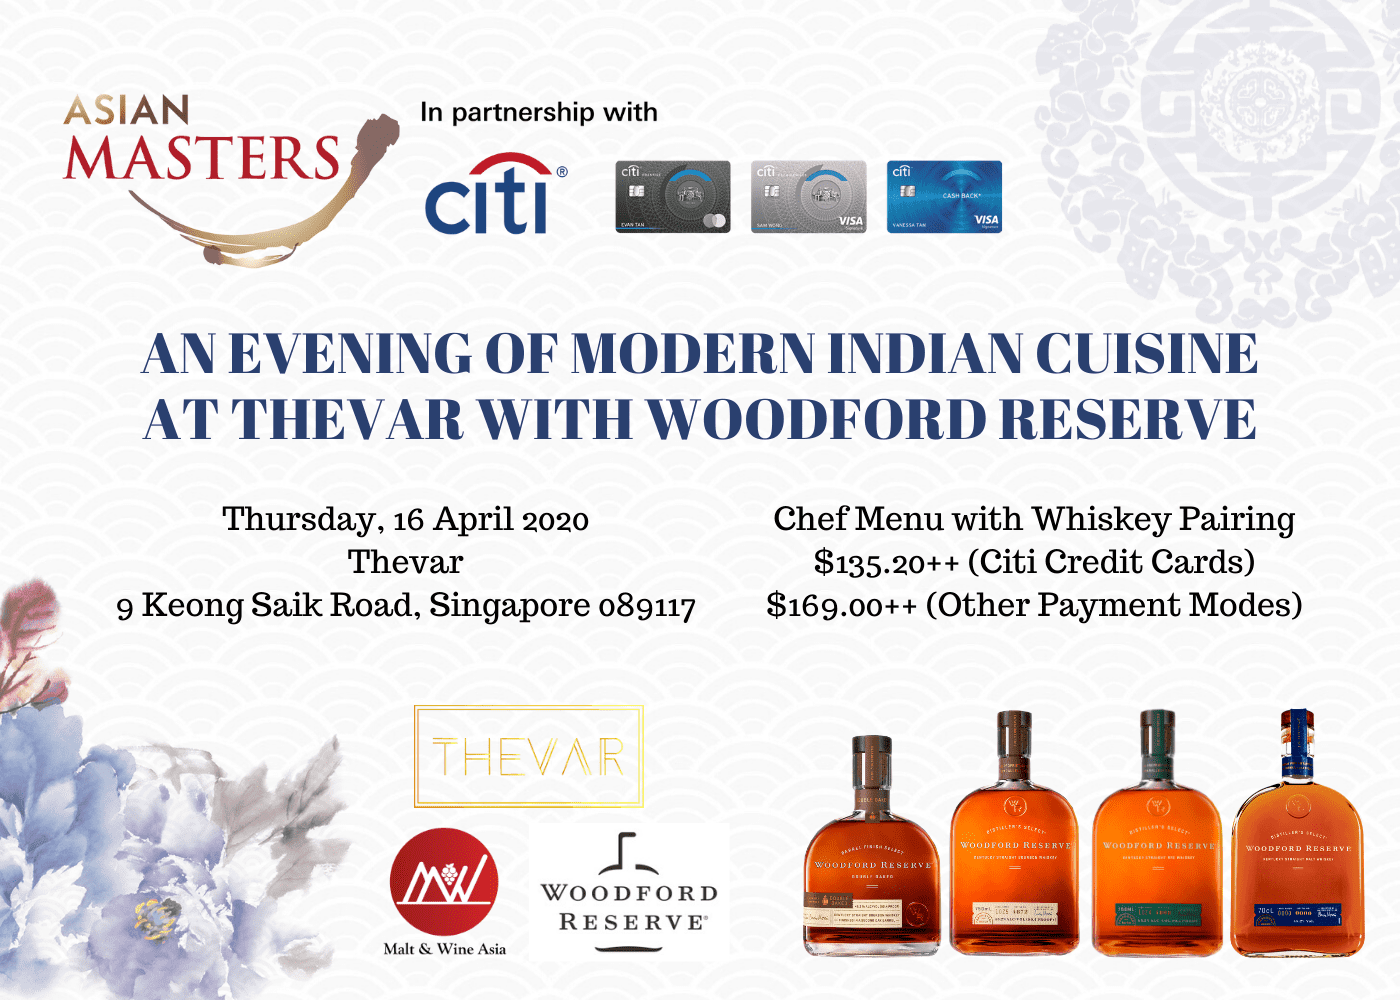 An Evening of Modern Indian Cuisine at Thevar with Woodford Reserve